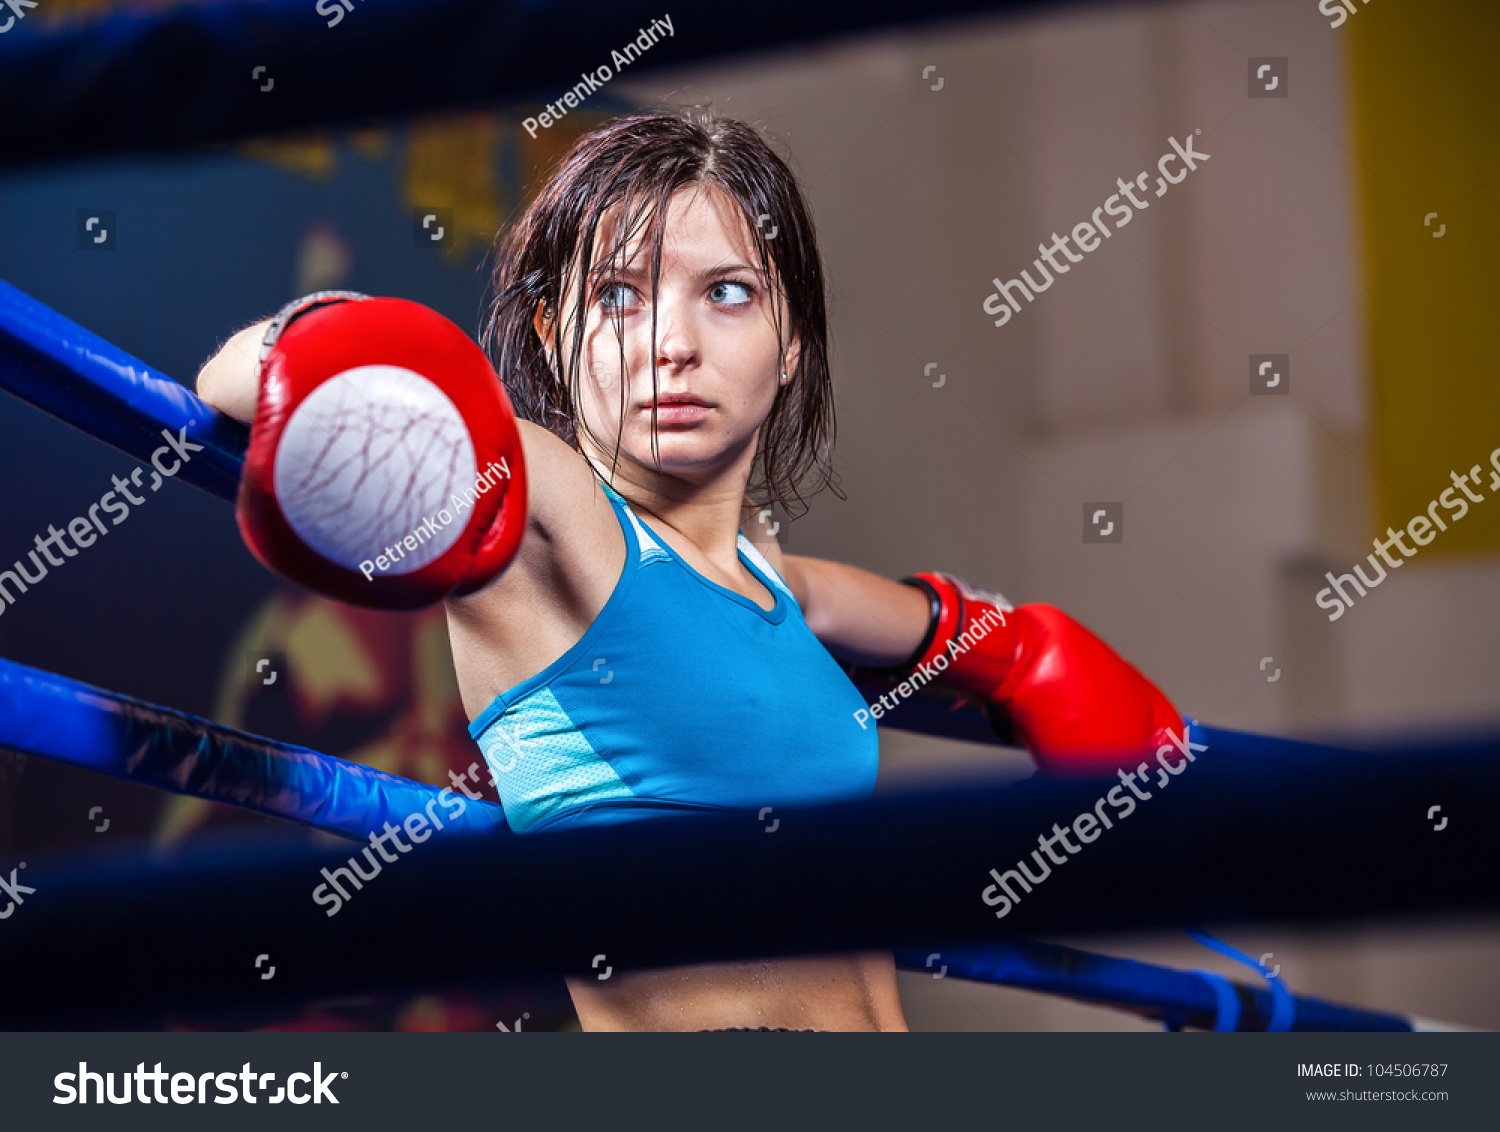 how to become a professional boxer in india